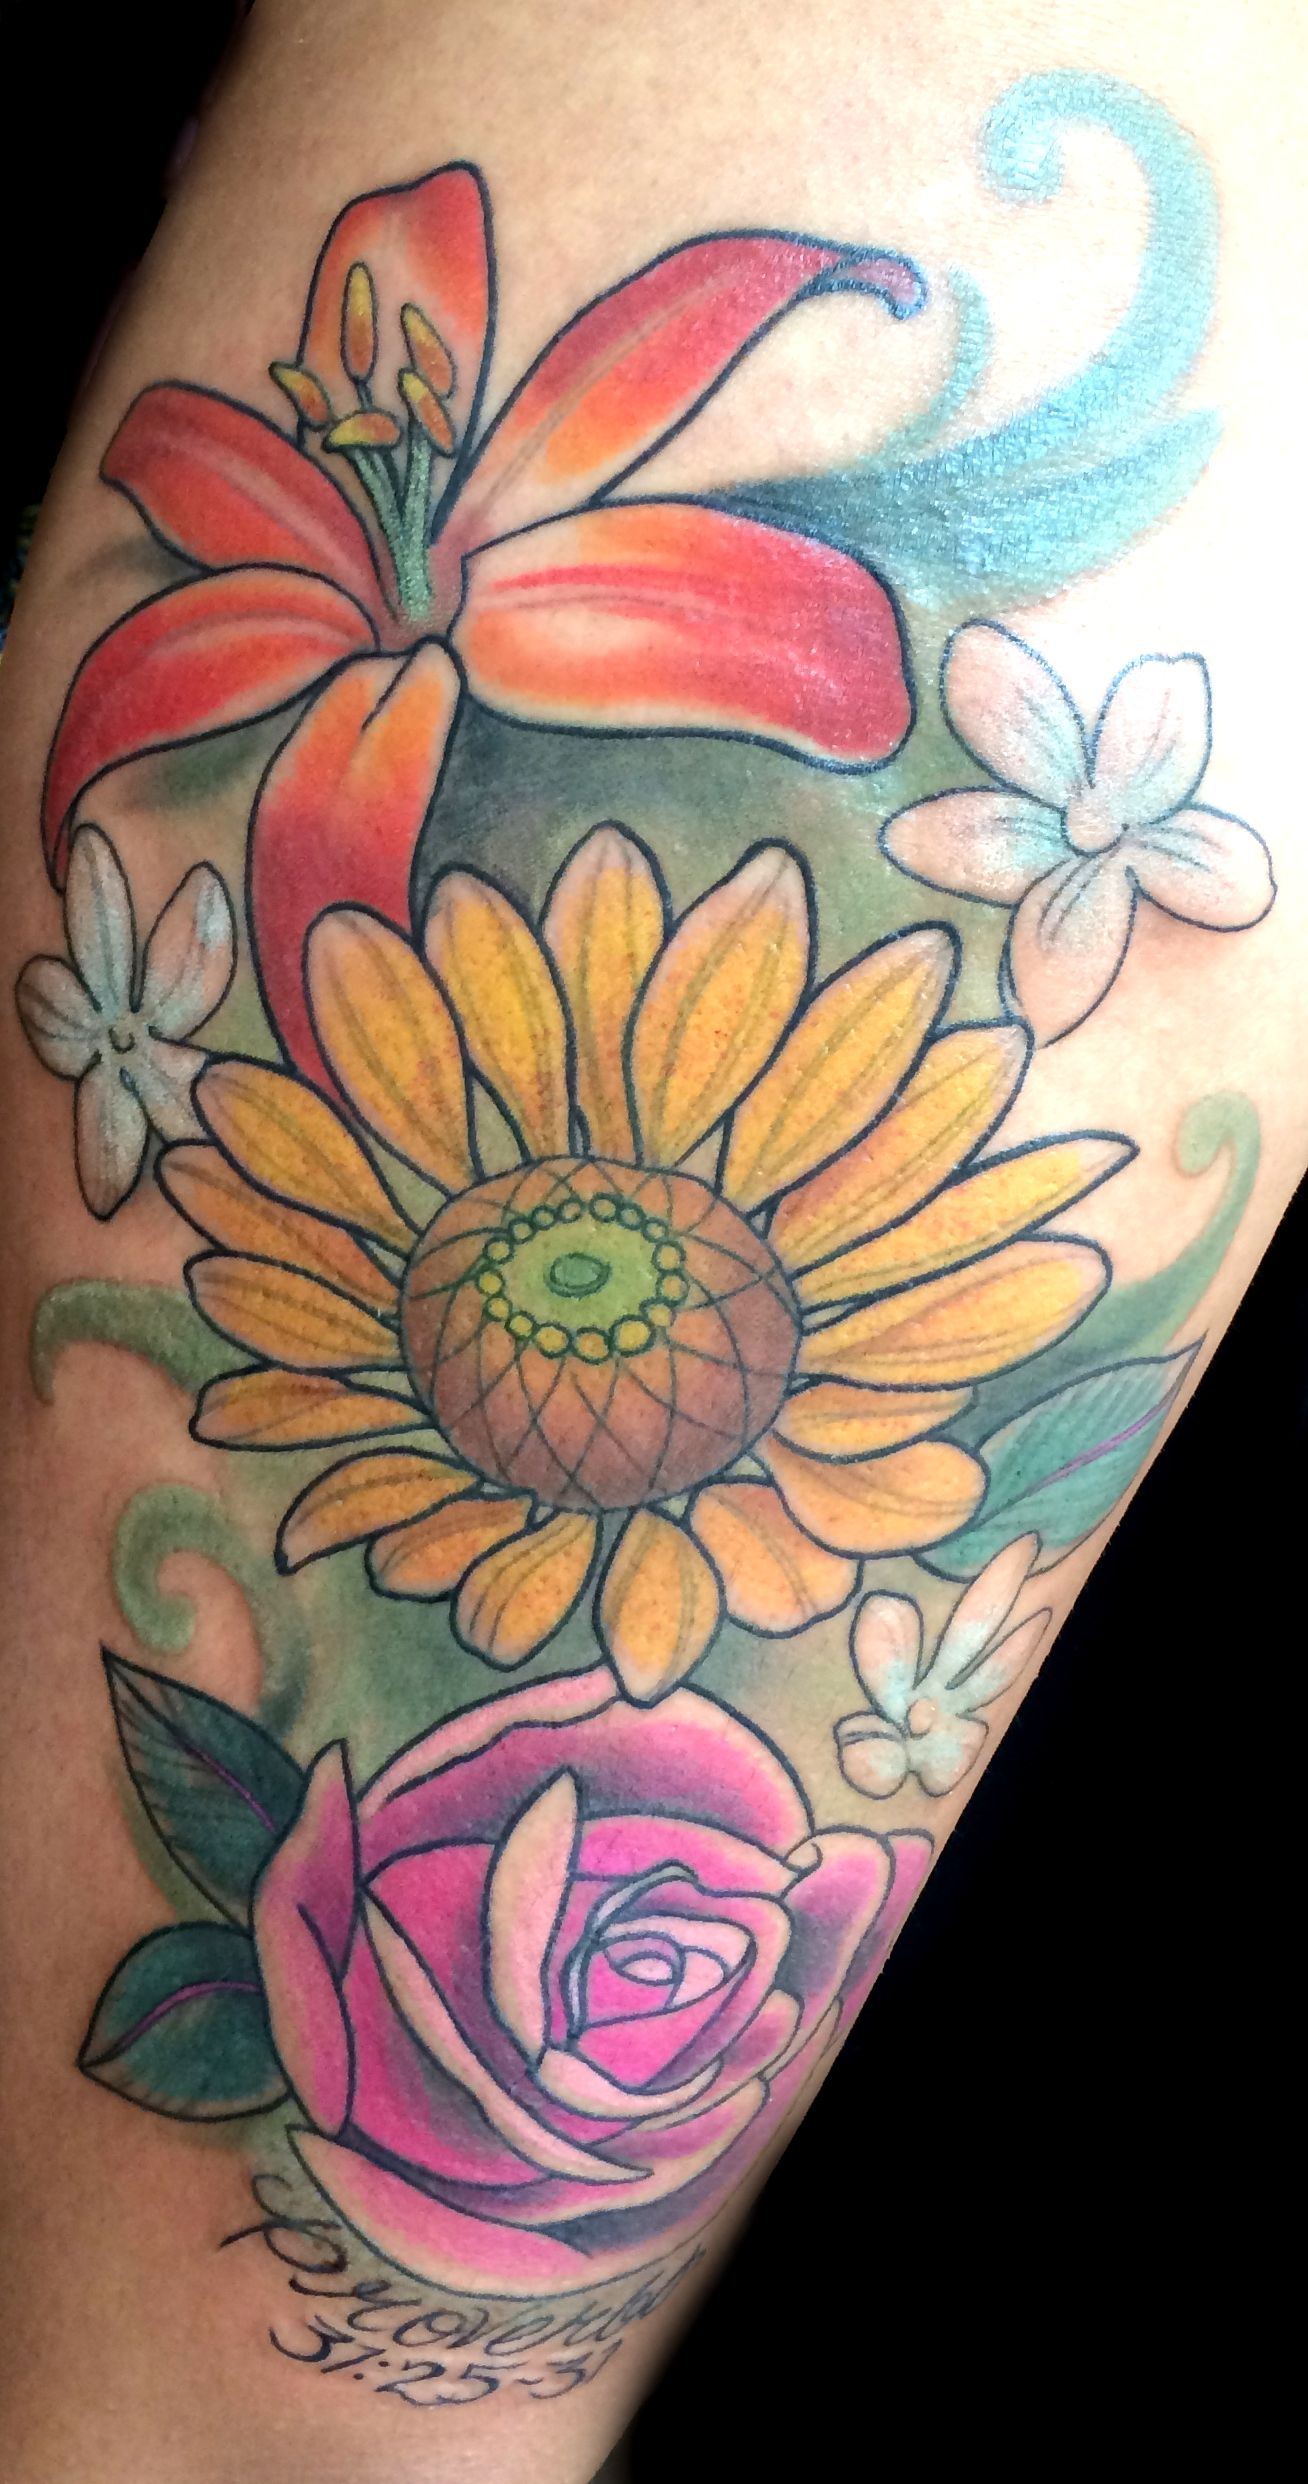 30 lily flower tattoos design ideas for men and women lily 30 lily flower tattoos design ideas for men and women dhlflorist Images